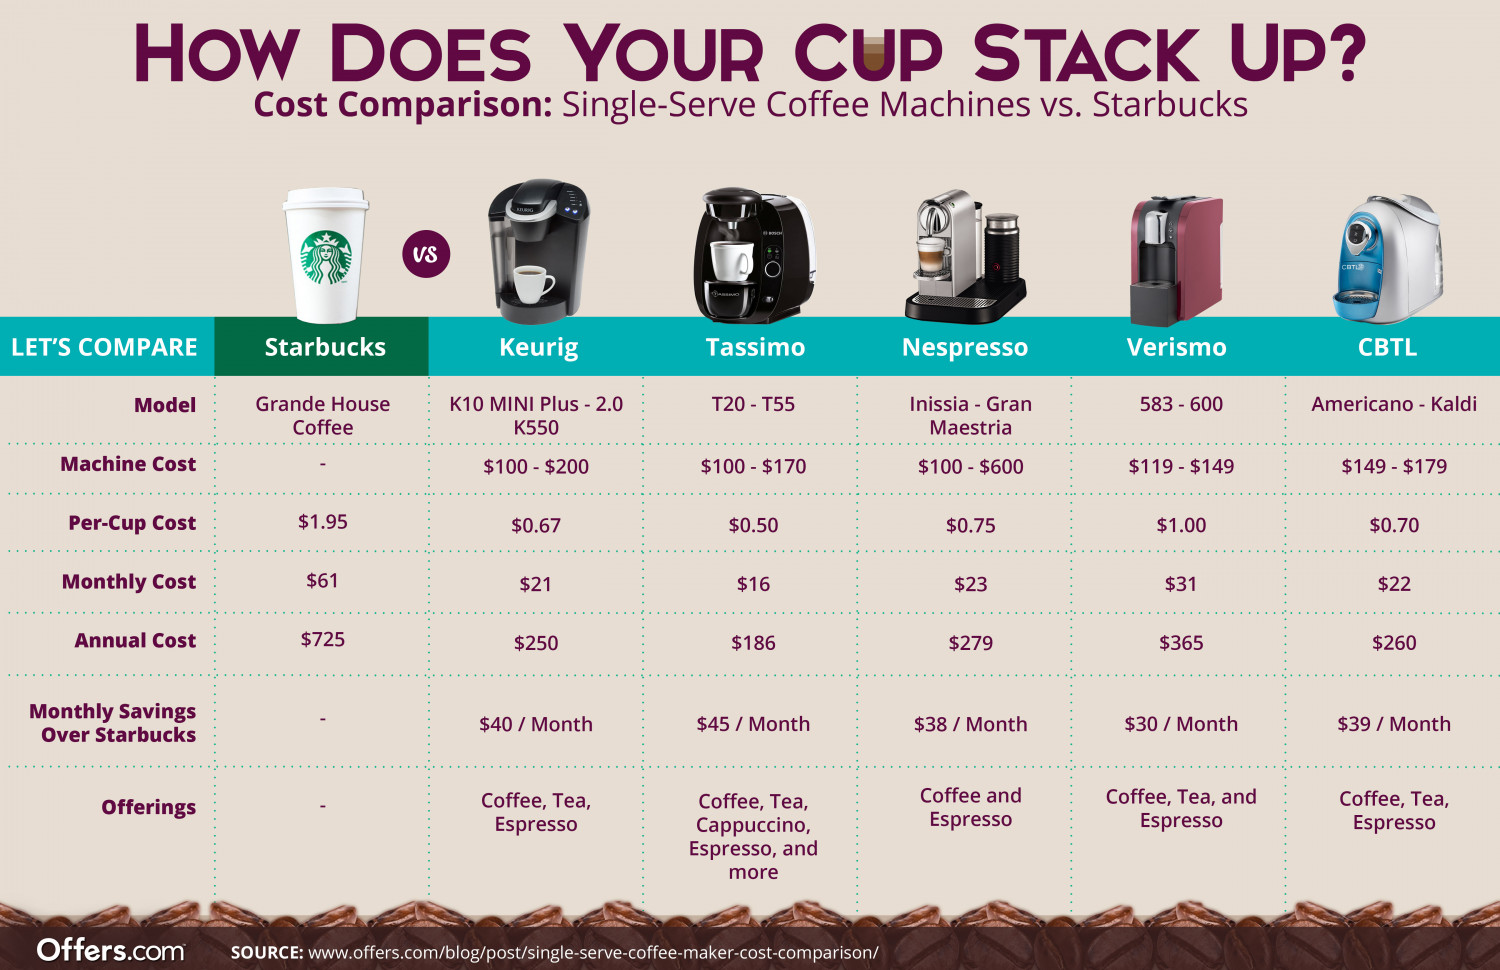 How Does Your Cup Stack Up? Infographic